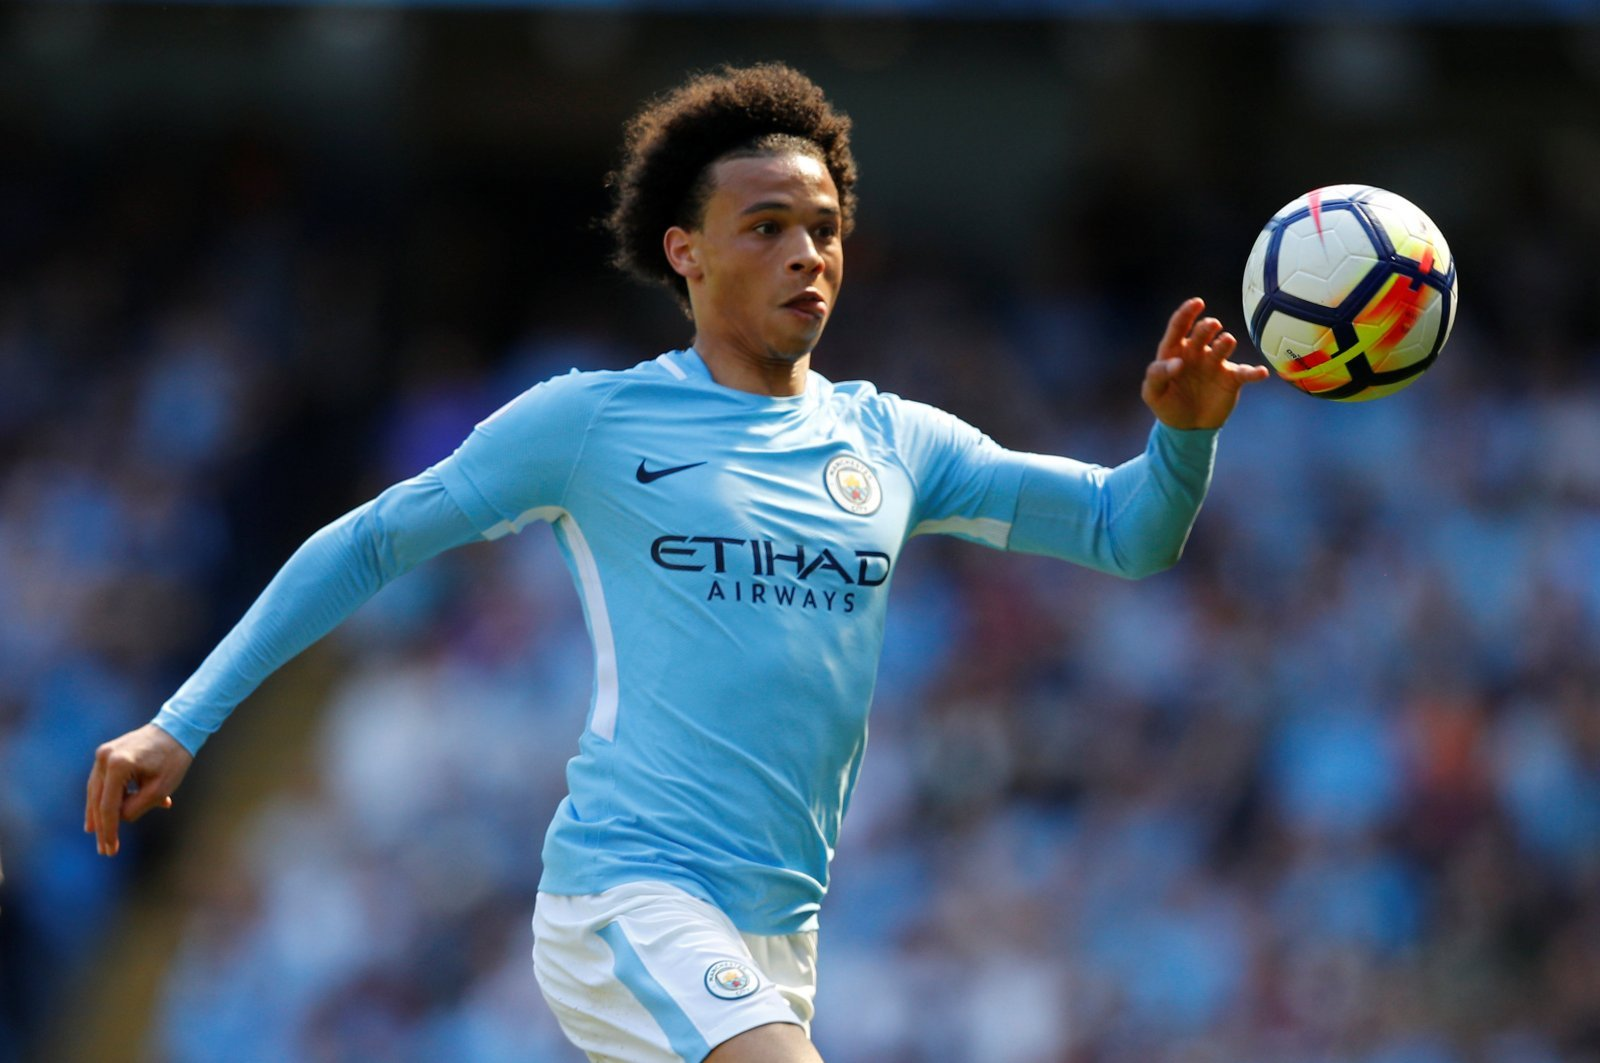 Guardiola urges Man City chiefs to give Leroy Sane new contract